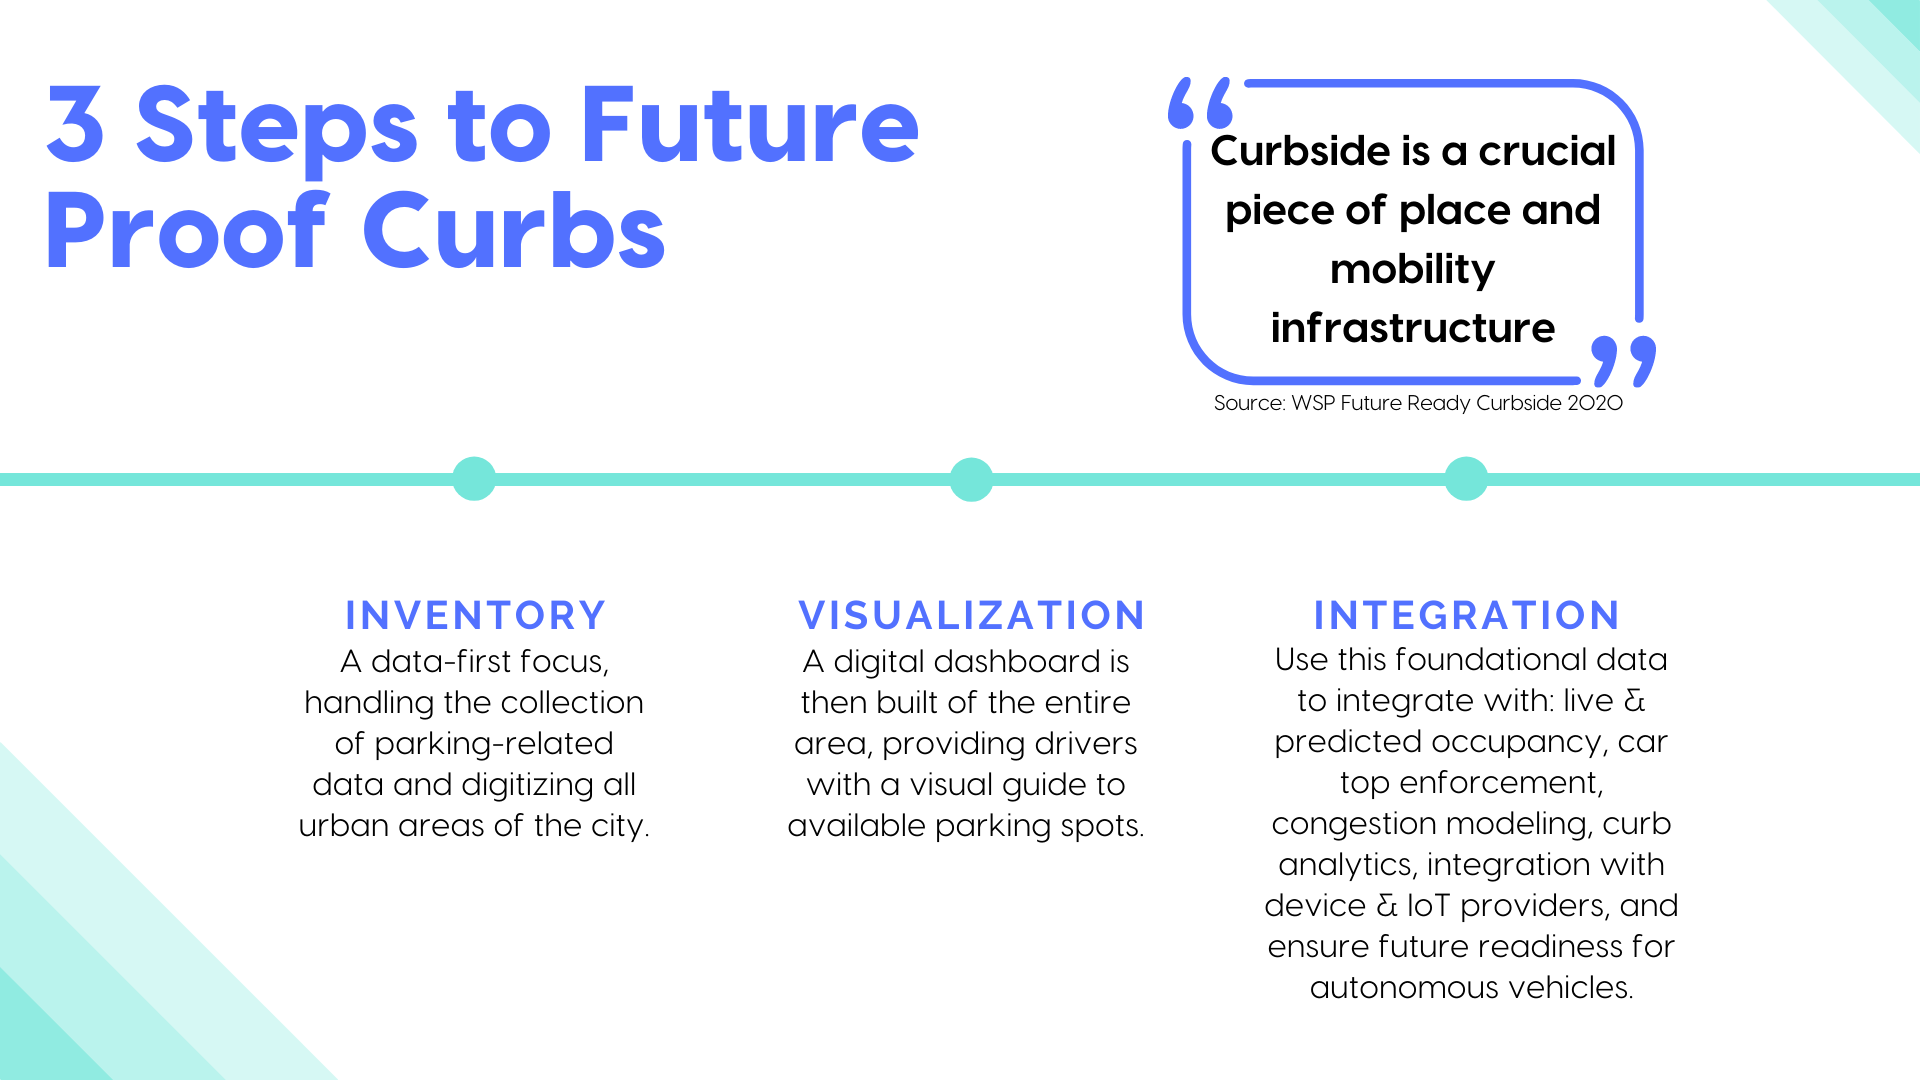 Spot Parking's 3 steps to future proof curbs, a crucial piece of mobility infrastructure